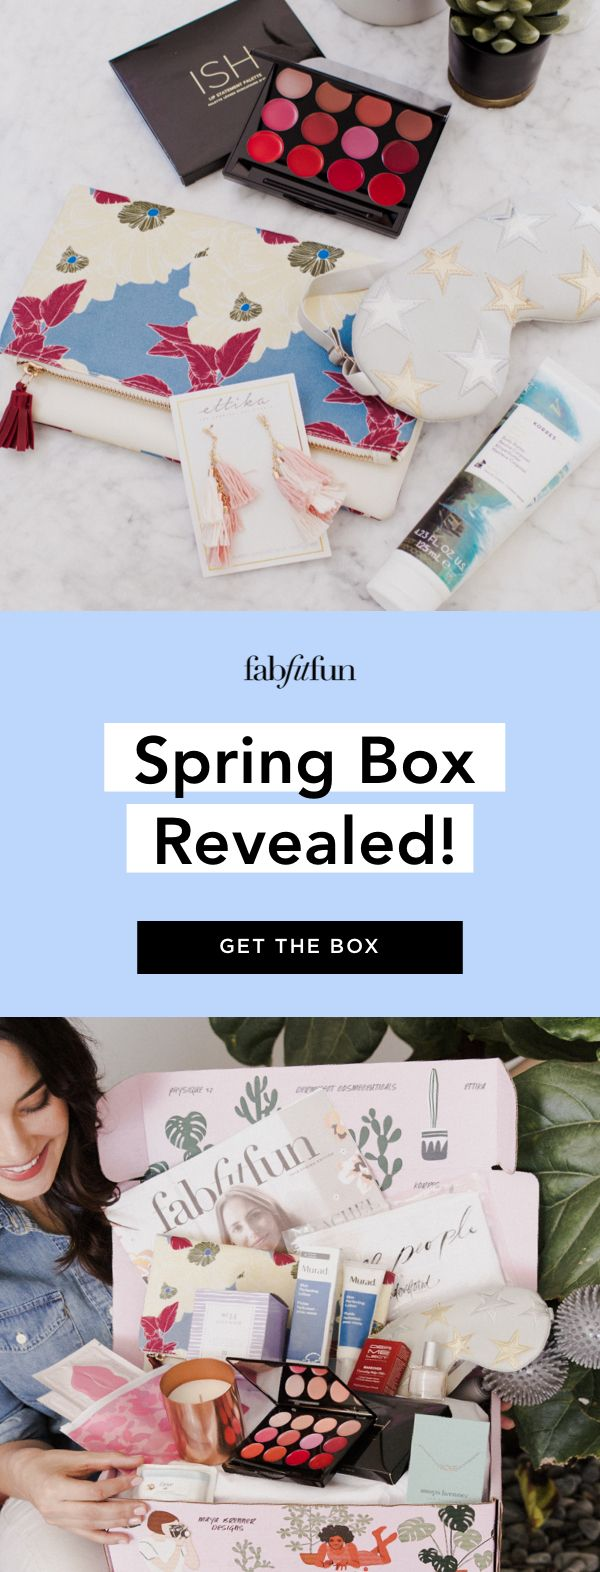 Get the FabFitFun Spring Box today! Use code BRIGHT to get $10 off your 1st box.  This is the best way to discover your new favorite beauty, fashion & wellness products affordably and conveniently!